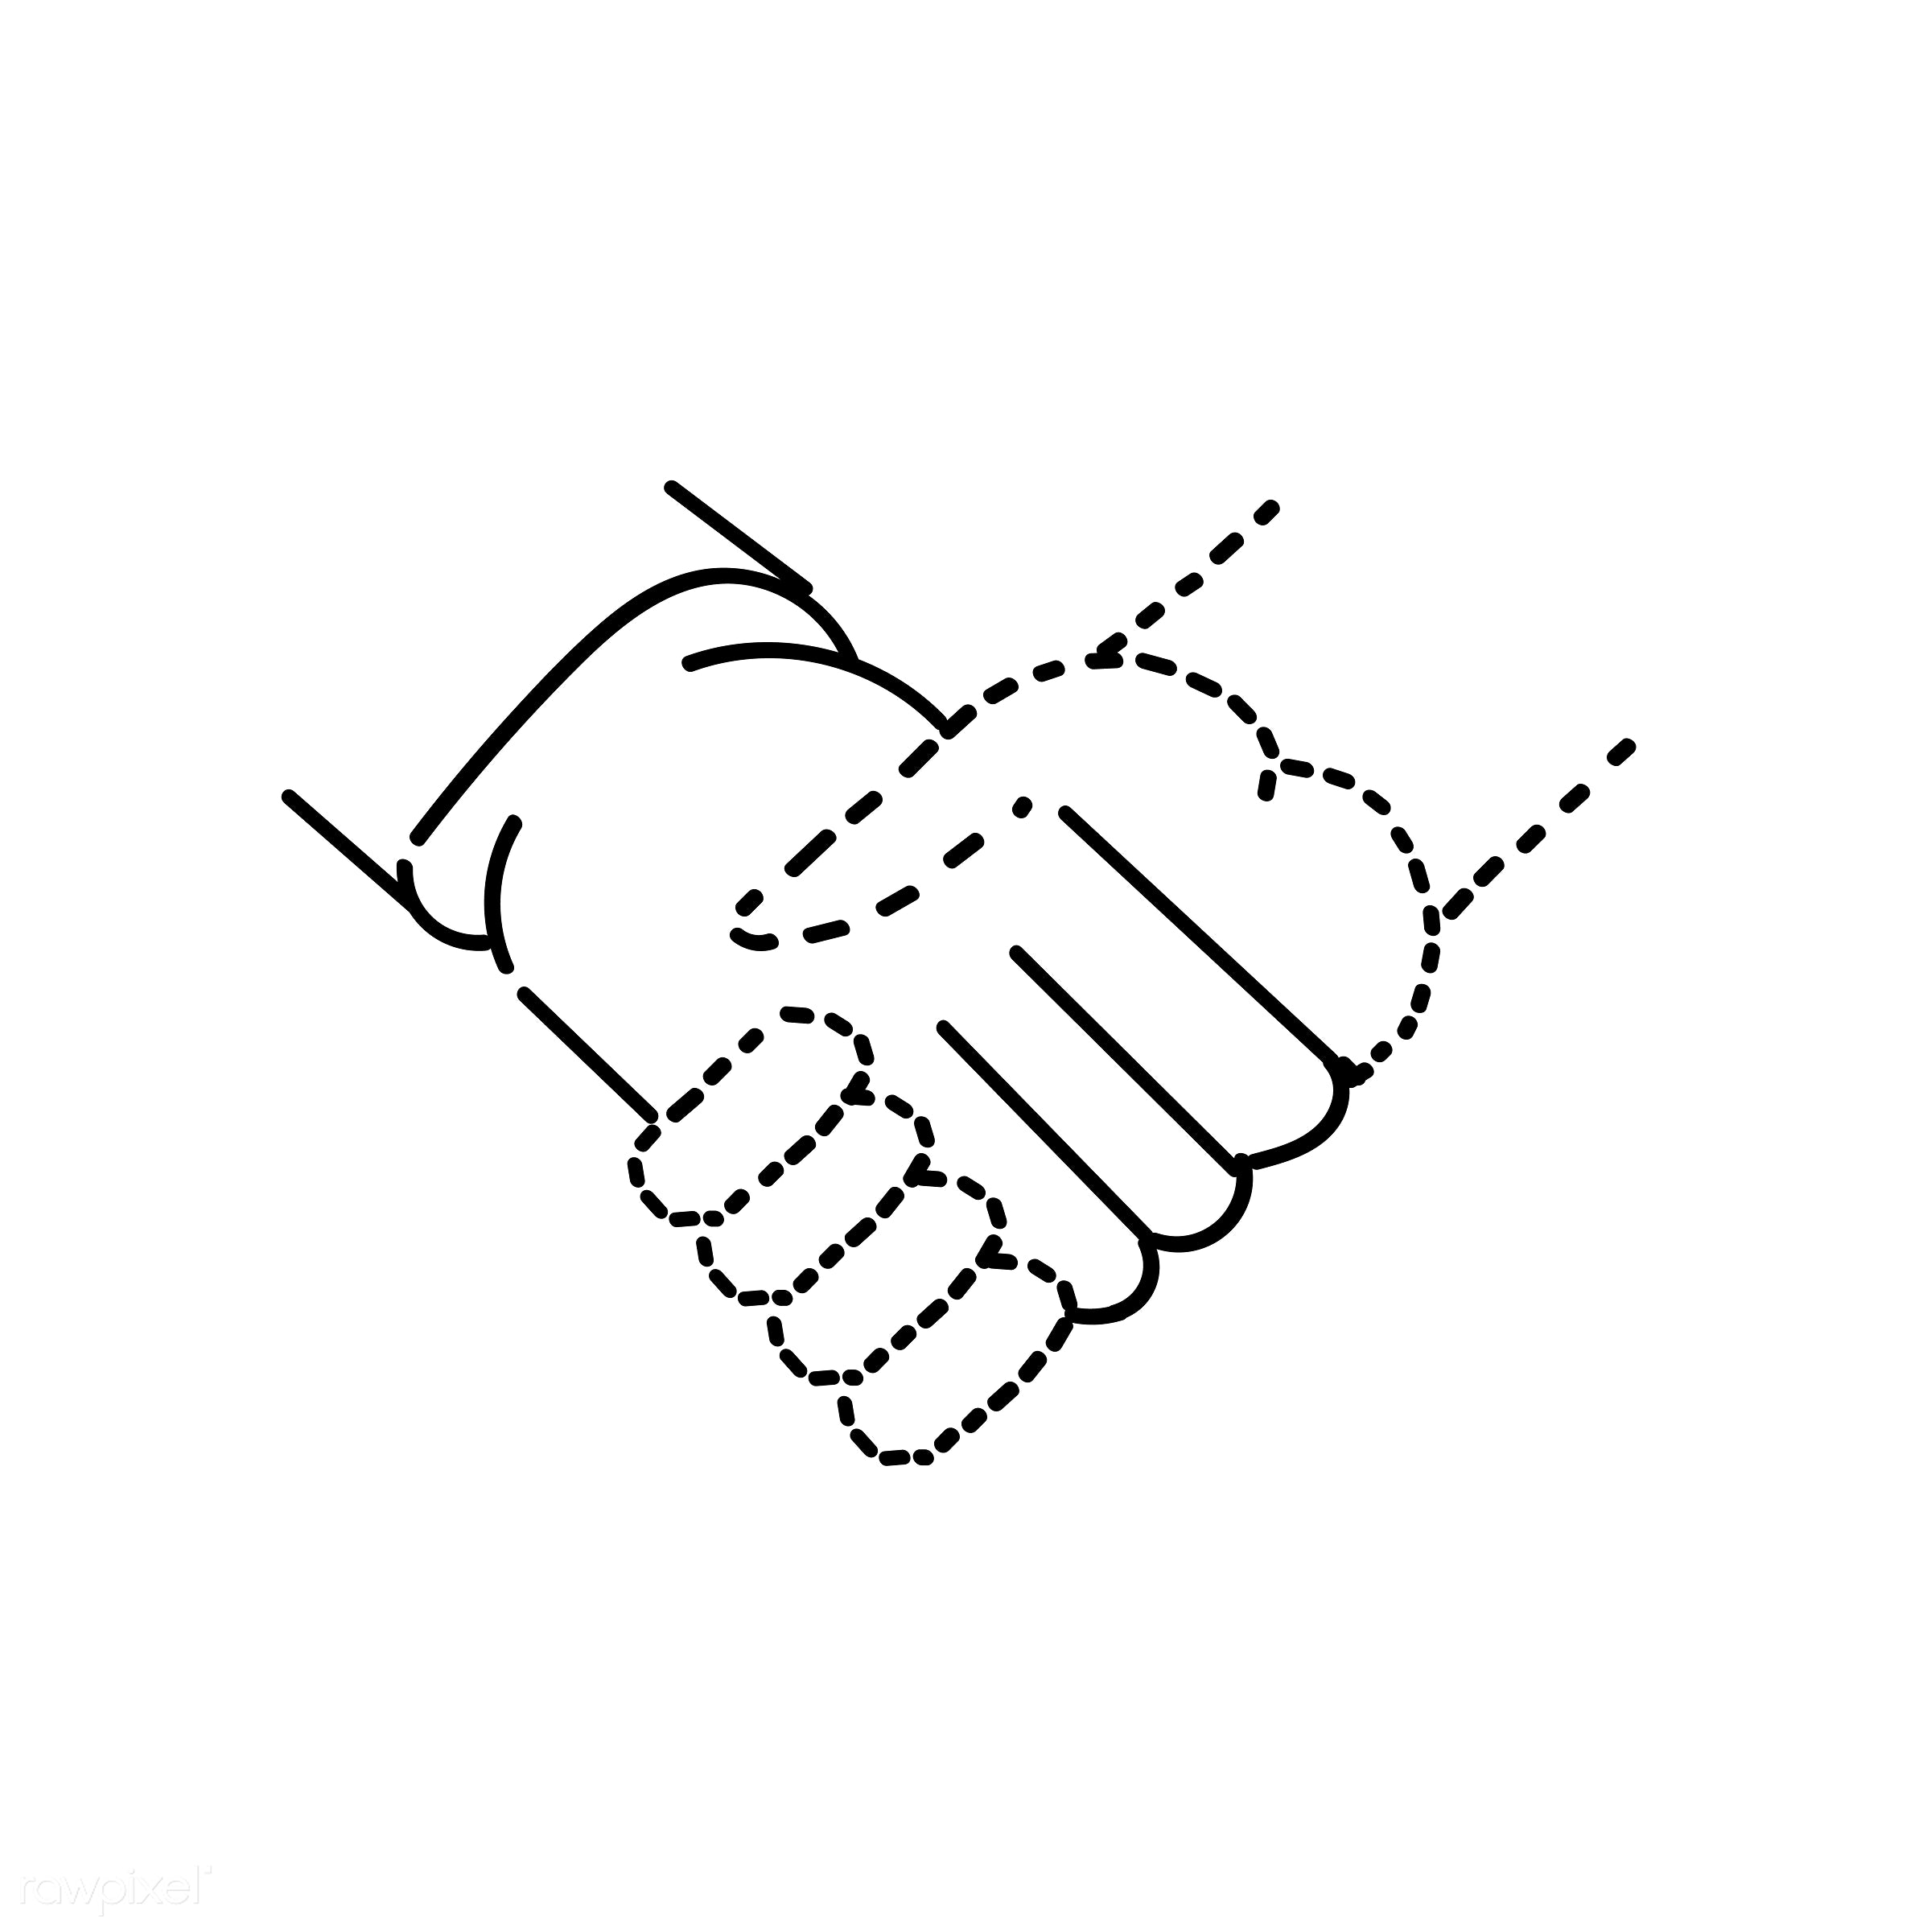 Hand drawing illustration of communication concept - agreement, art, artwork, collaboration, communication, connection,...